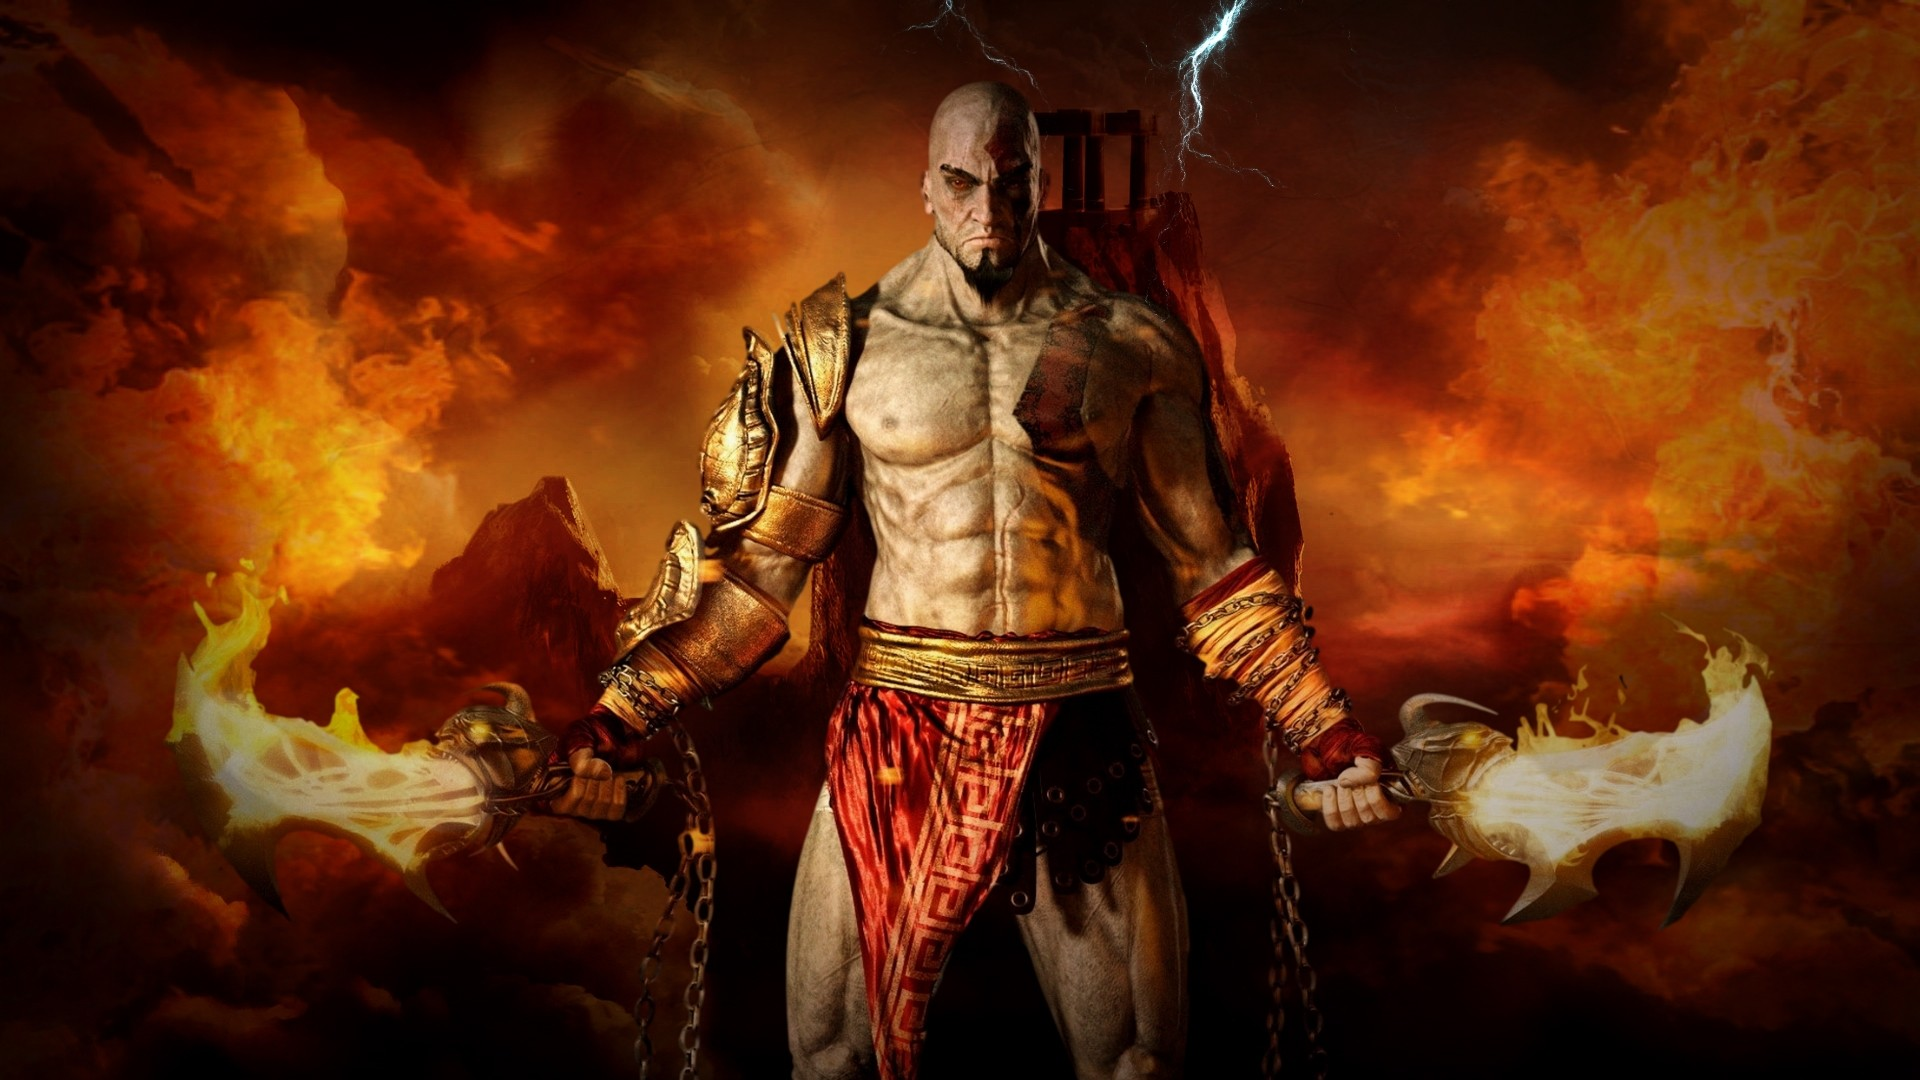 Kratos Wallpaper Desktop